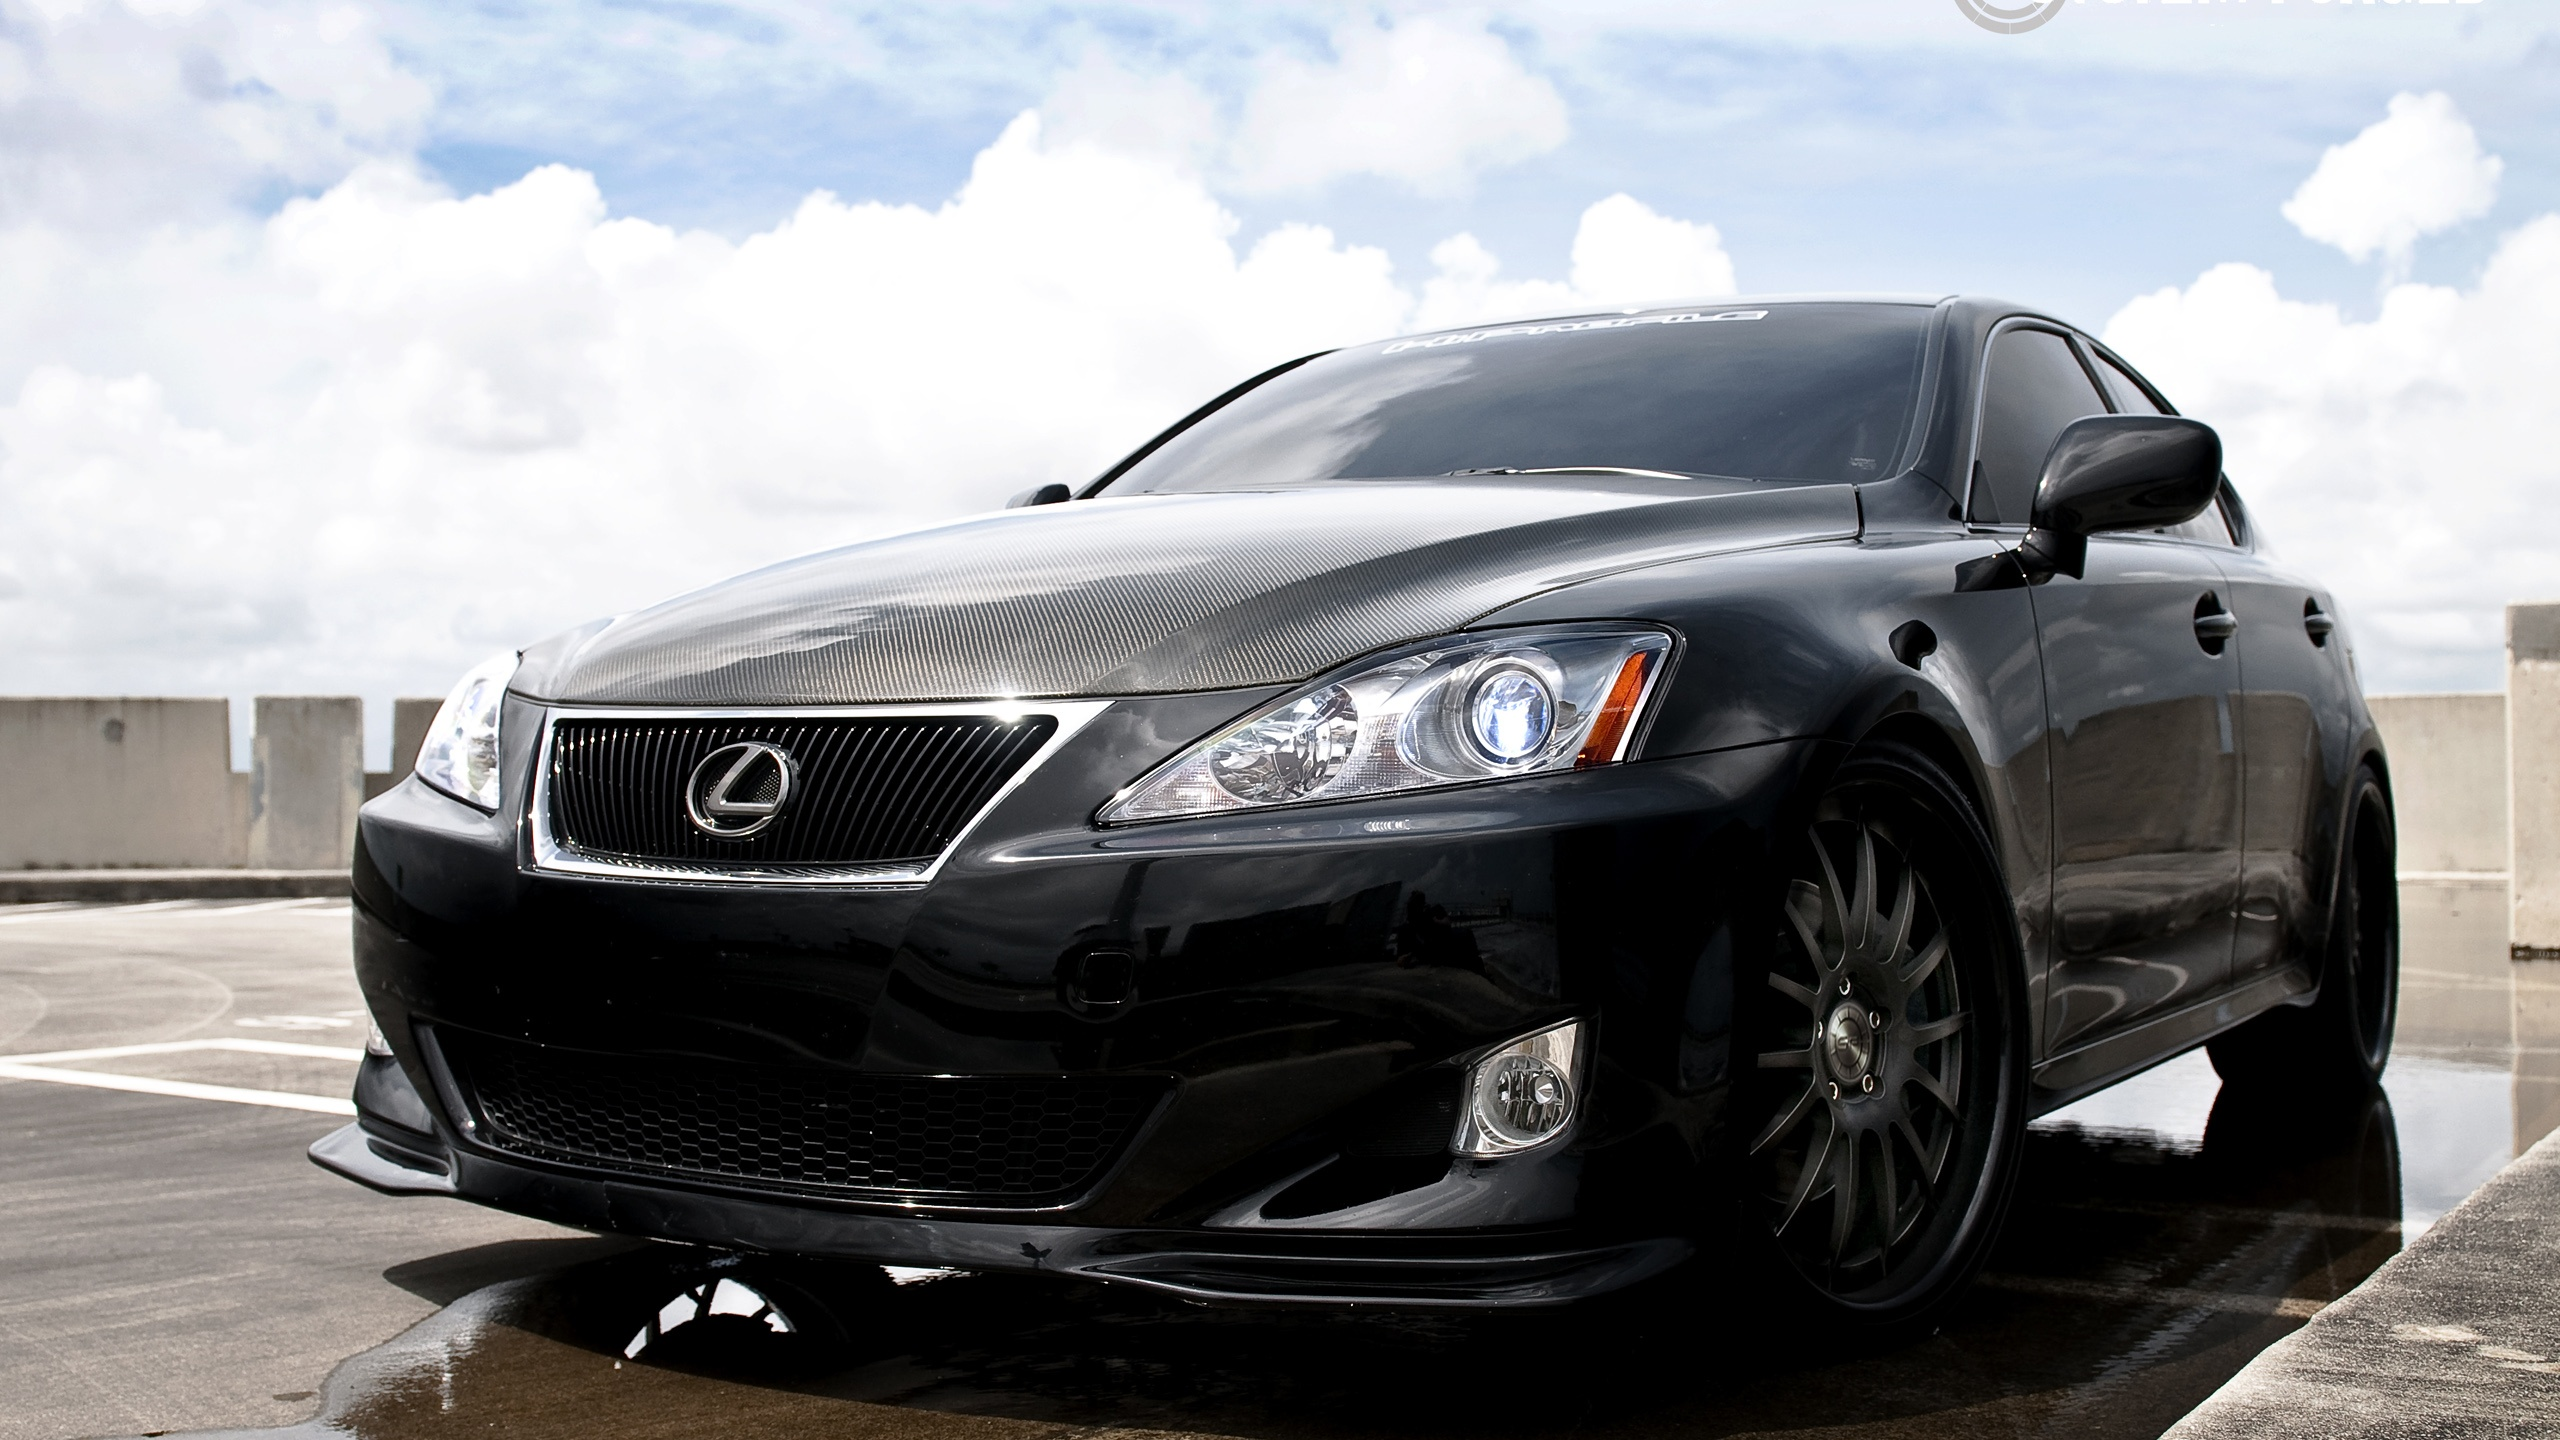 urlhttpcnbest wallpapernetLexus IS350 black car 2560x1440html 2560x1440